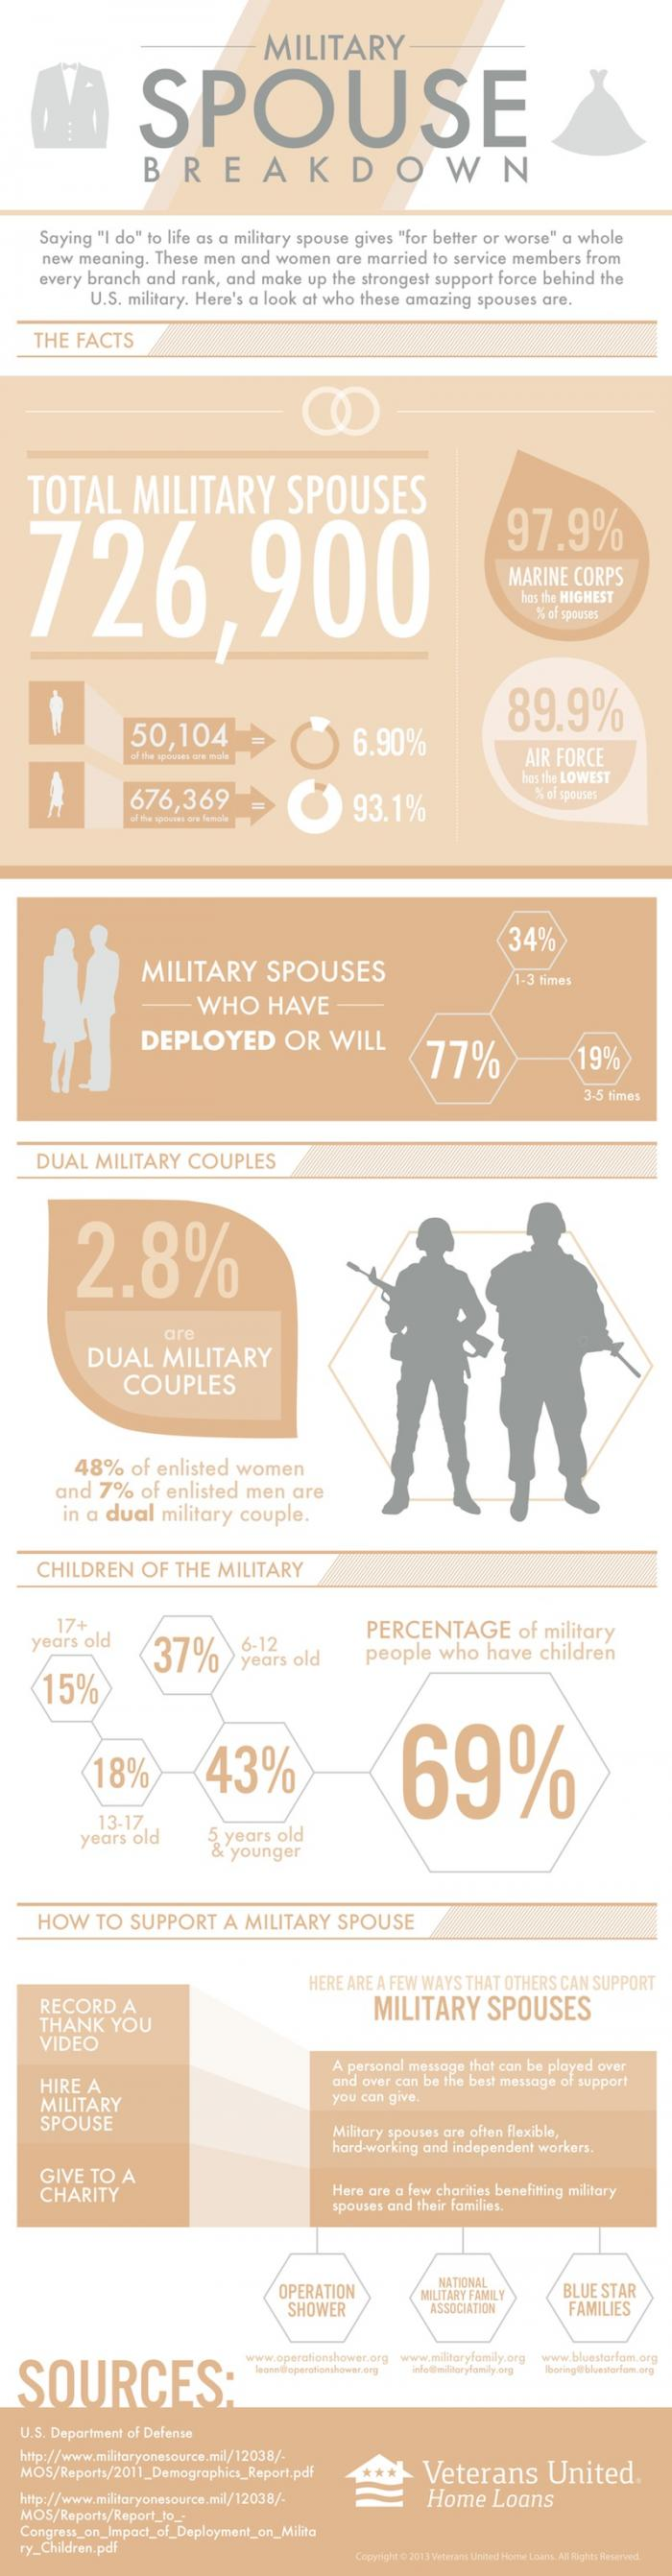 Military Spouse Information Infographic